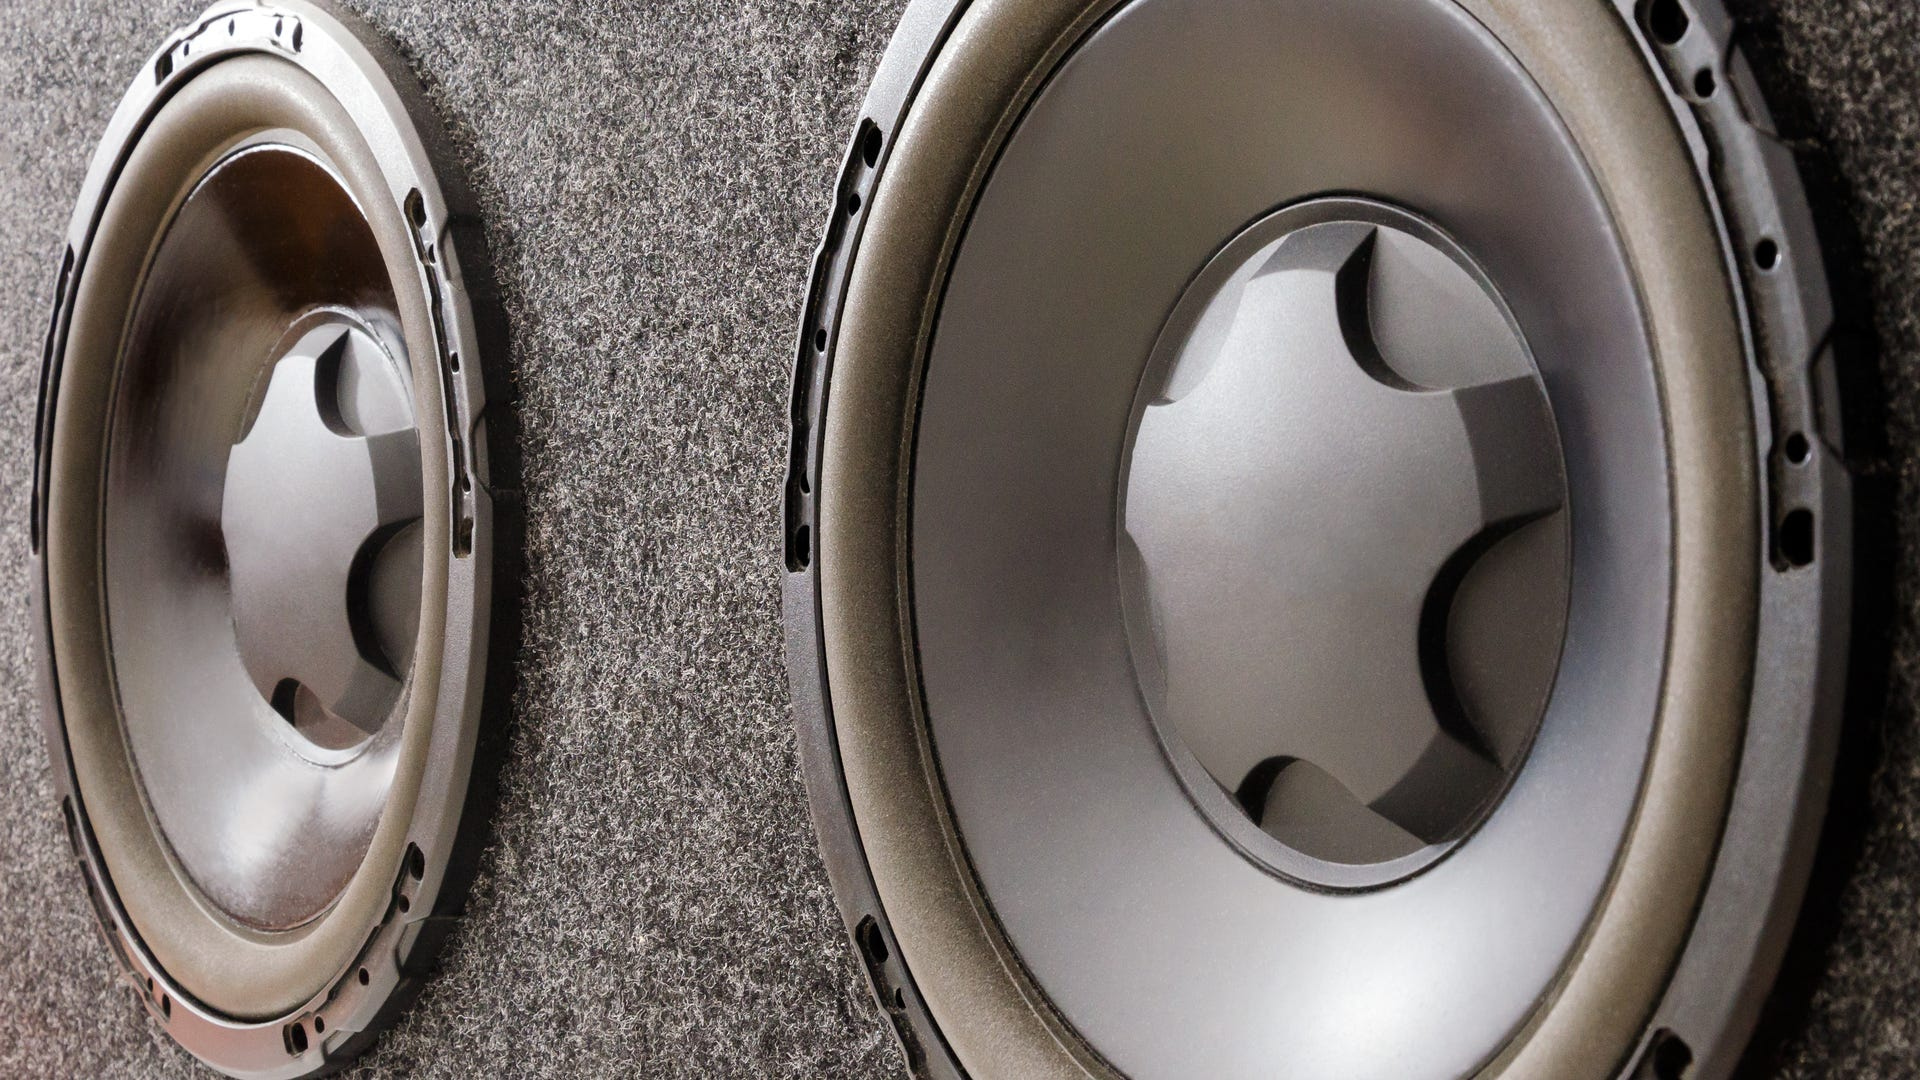 A subwoofer box for a car with two subwoofer speakers.